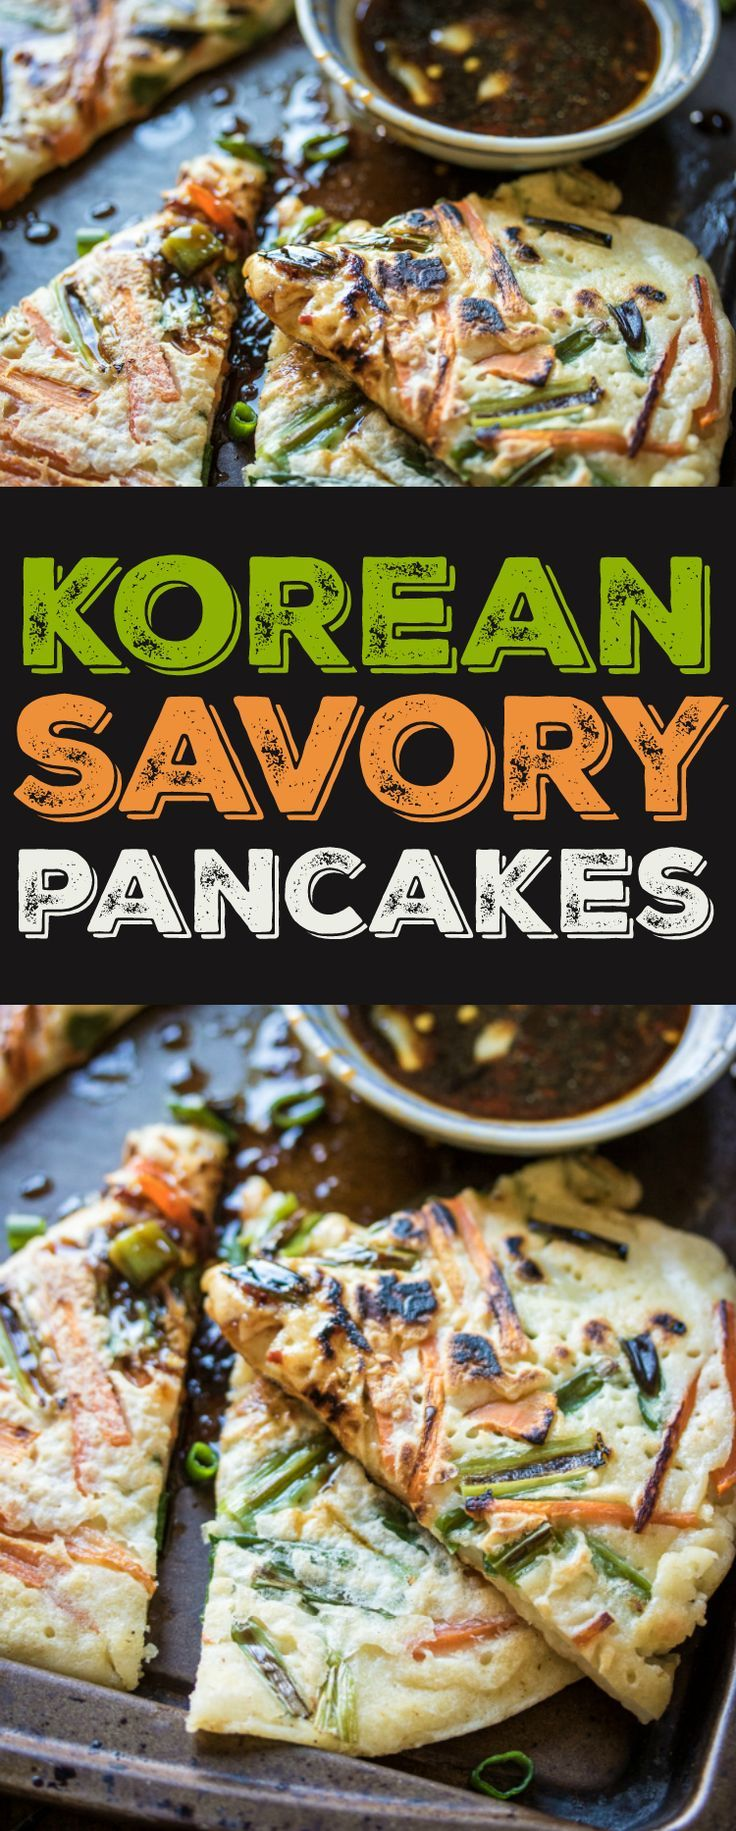 Korean Savory Pancakes